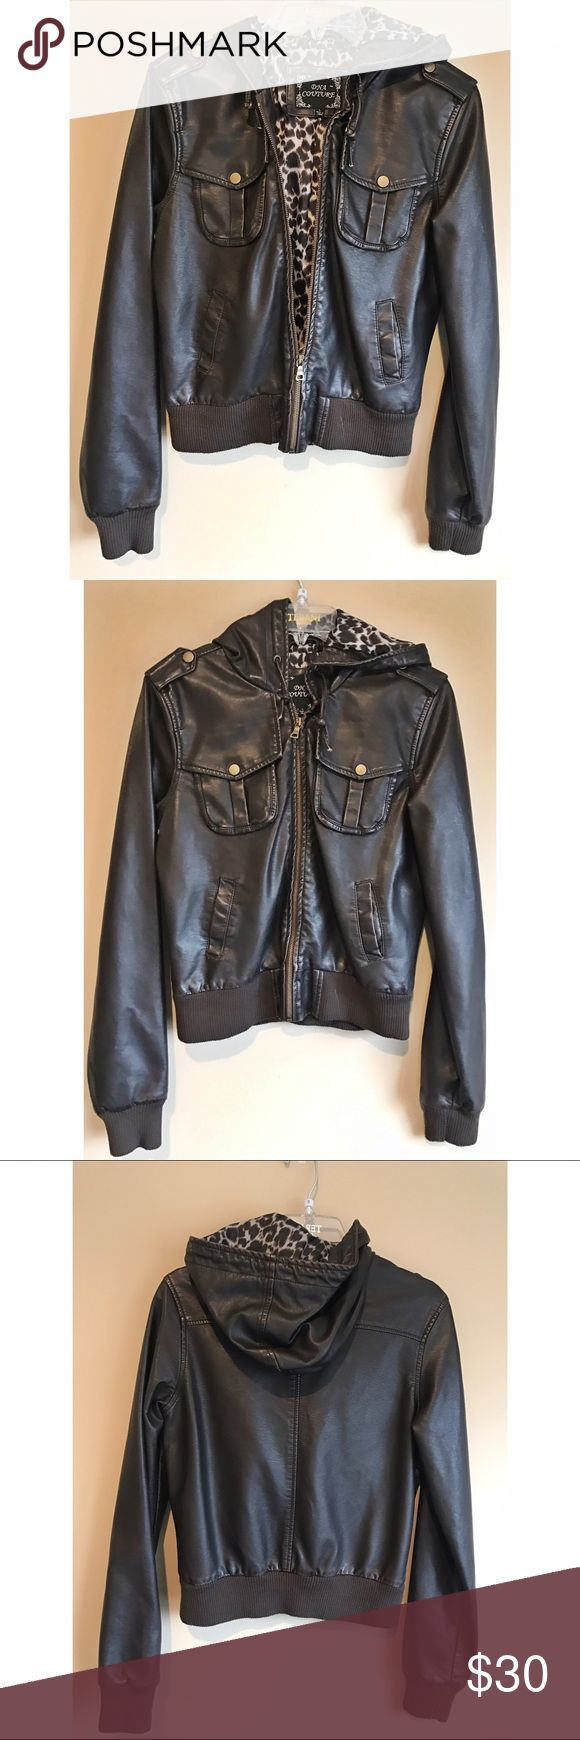 NWOT DNA Couture Leather Bomber Jacket NWOT DNA Couture Leather Bomber Jacket. Leopard print on the inside. Brand New Without Tags! Size large but fits more like a medium. DNA Couture Jackets & Coats